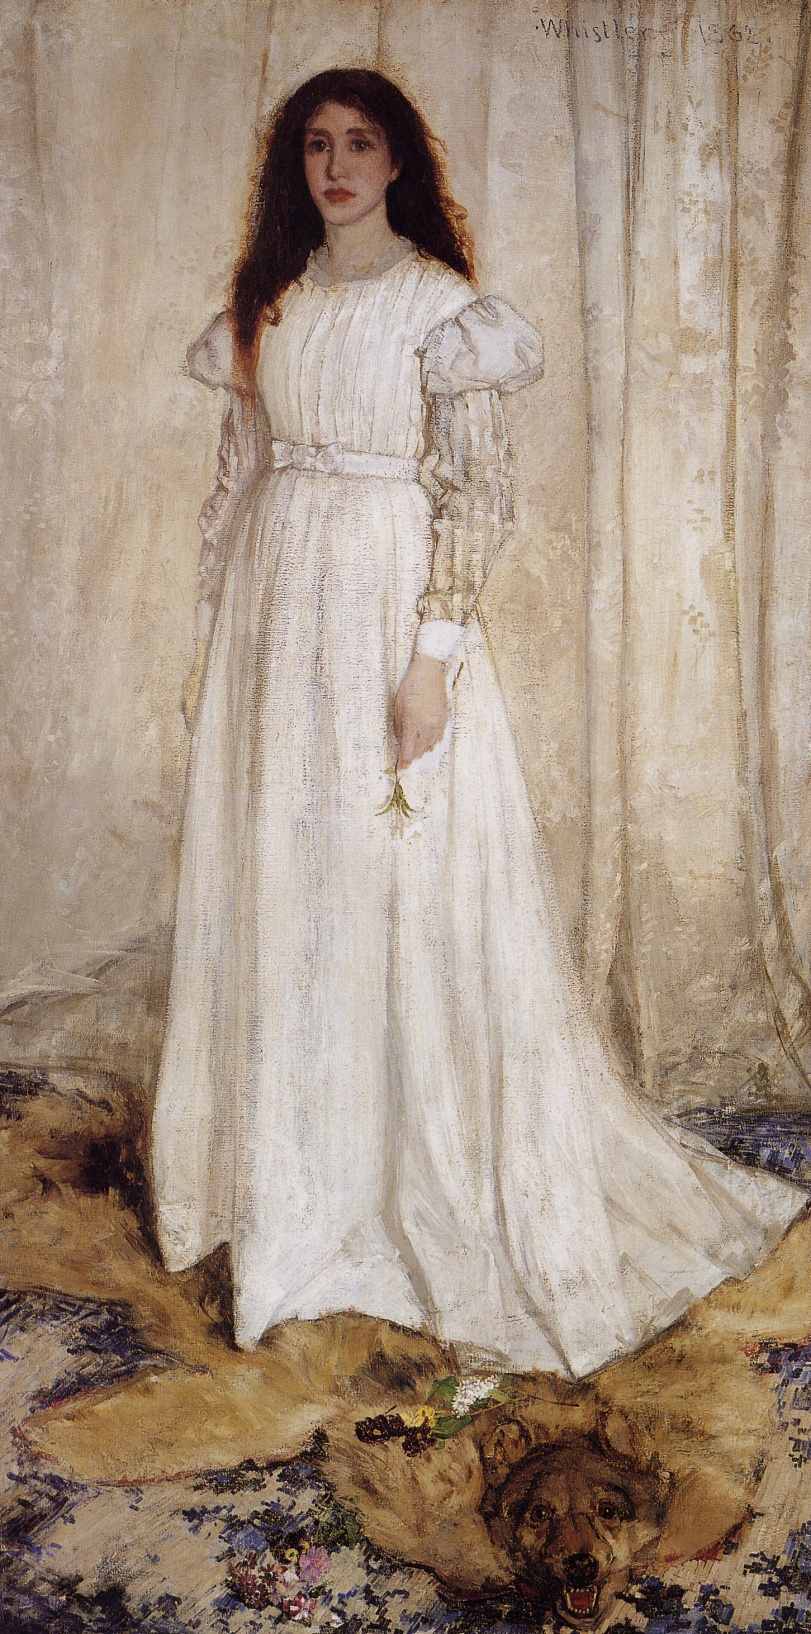 whistler_james_symphony_in_white_no_1_the_white_girl_1862